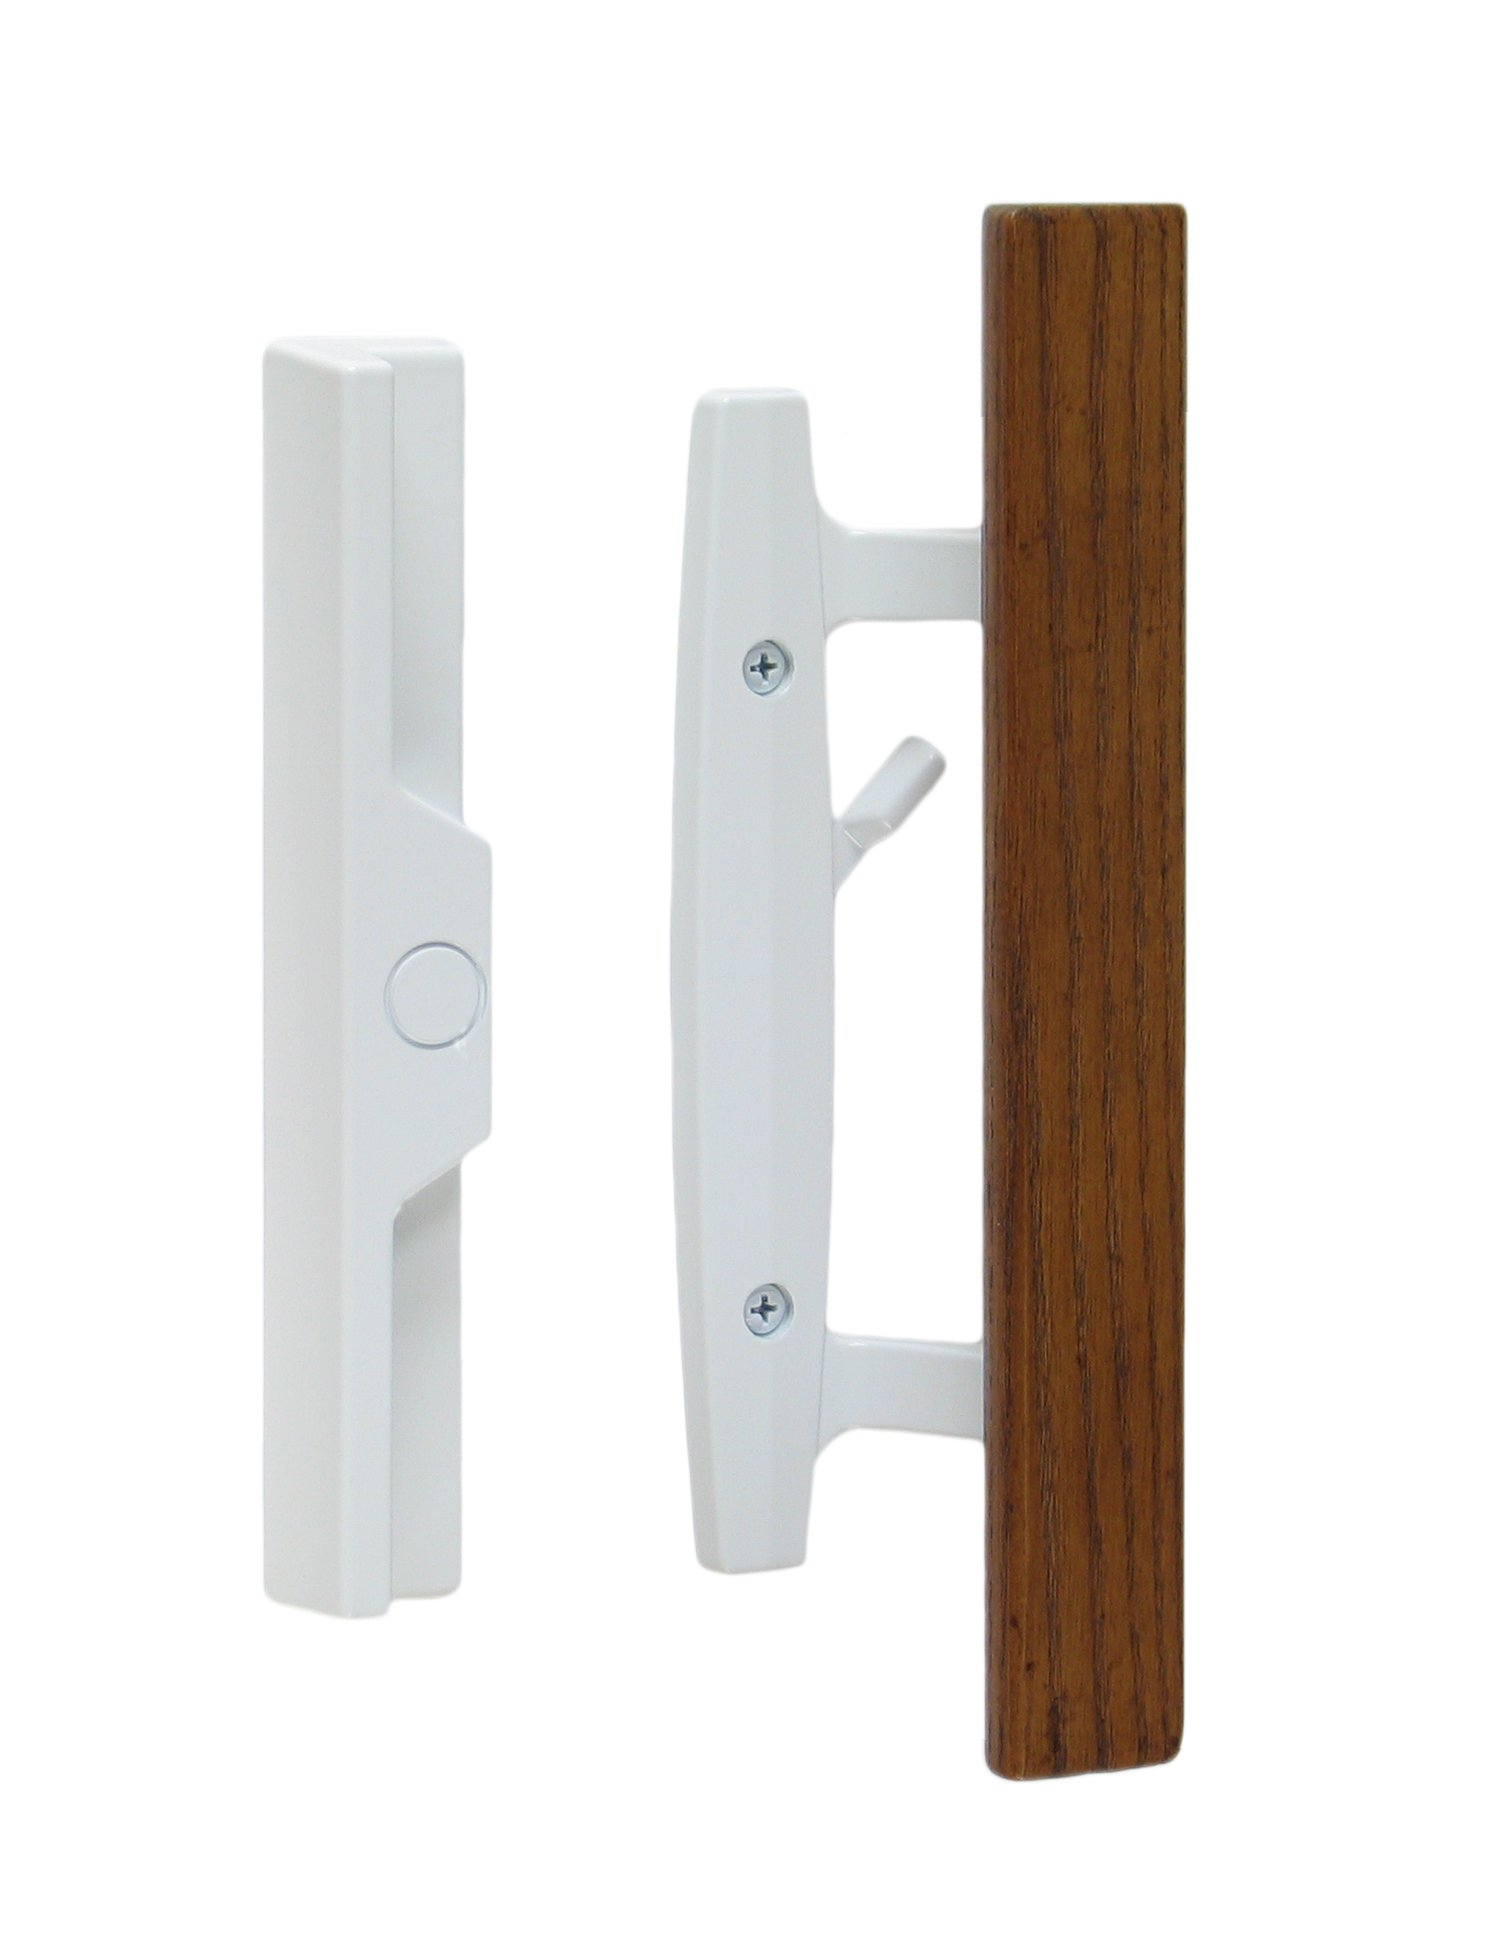 "Lanai Sliding Glass Door Handle and Mortise Lock Set with Oak Wood Pull in White Finish, Standard 3-15/16"" CTC Screw Holes, 1-3/4'' Door Thickness"